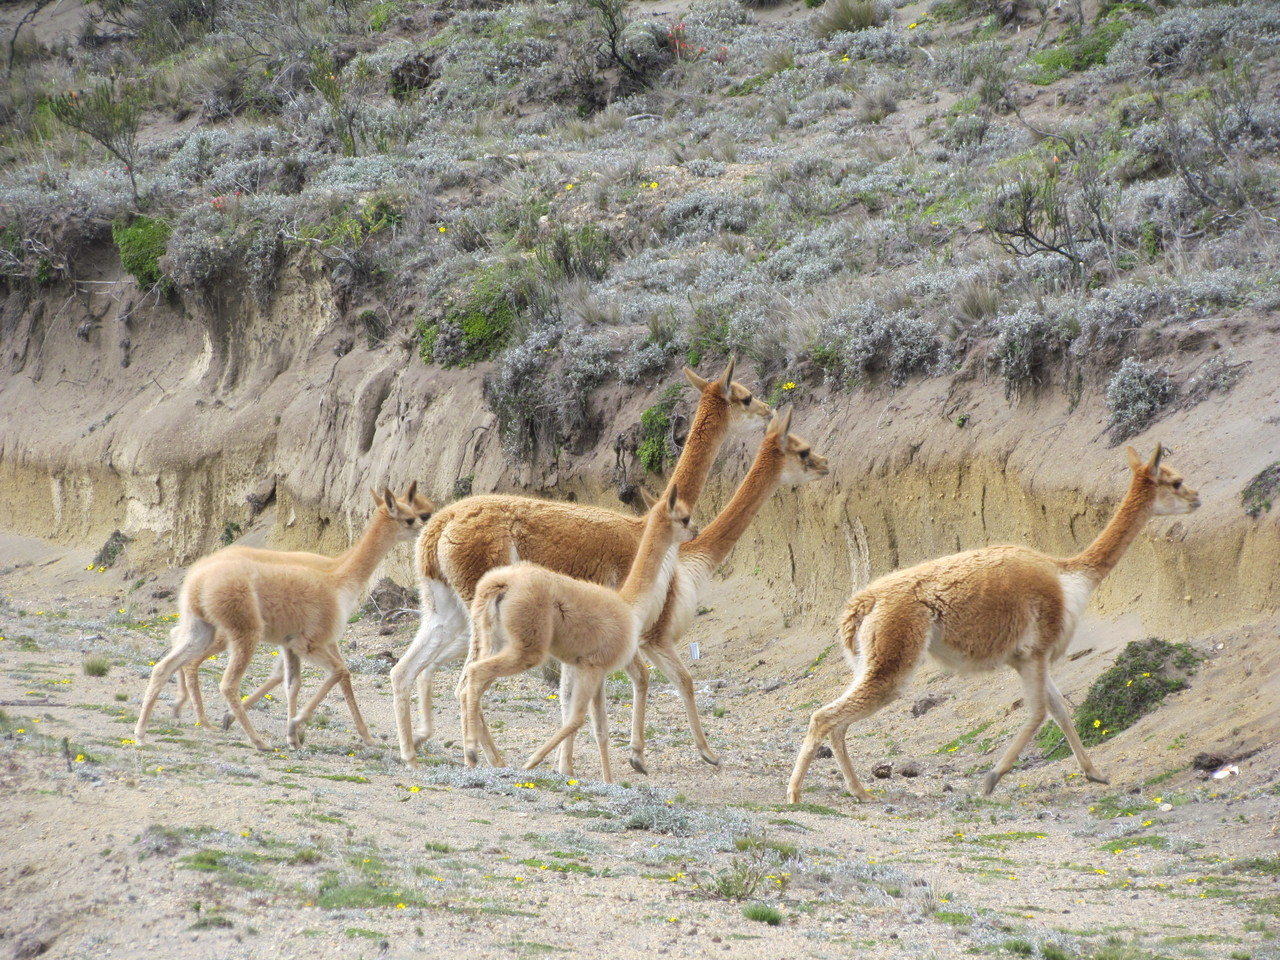 A history of the Ecuadorian vicuña